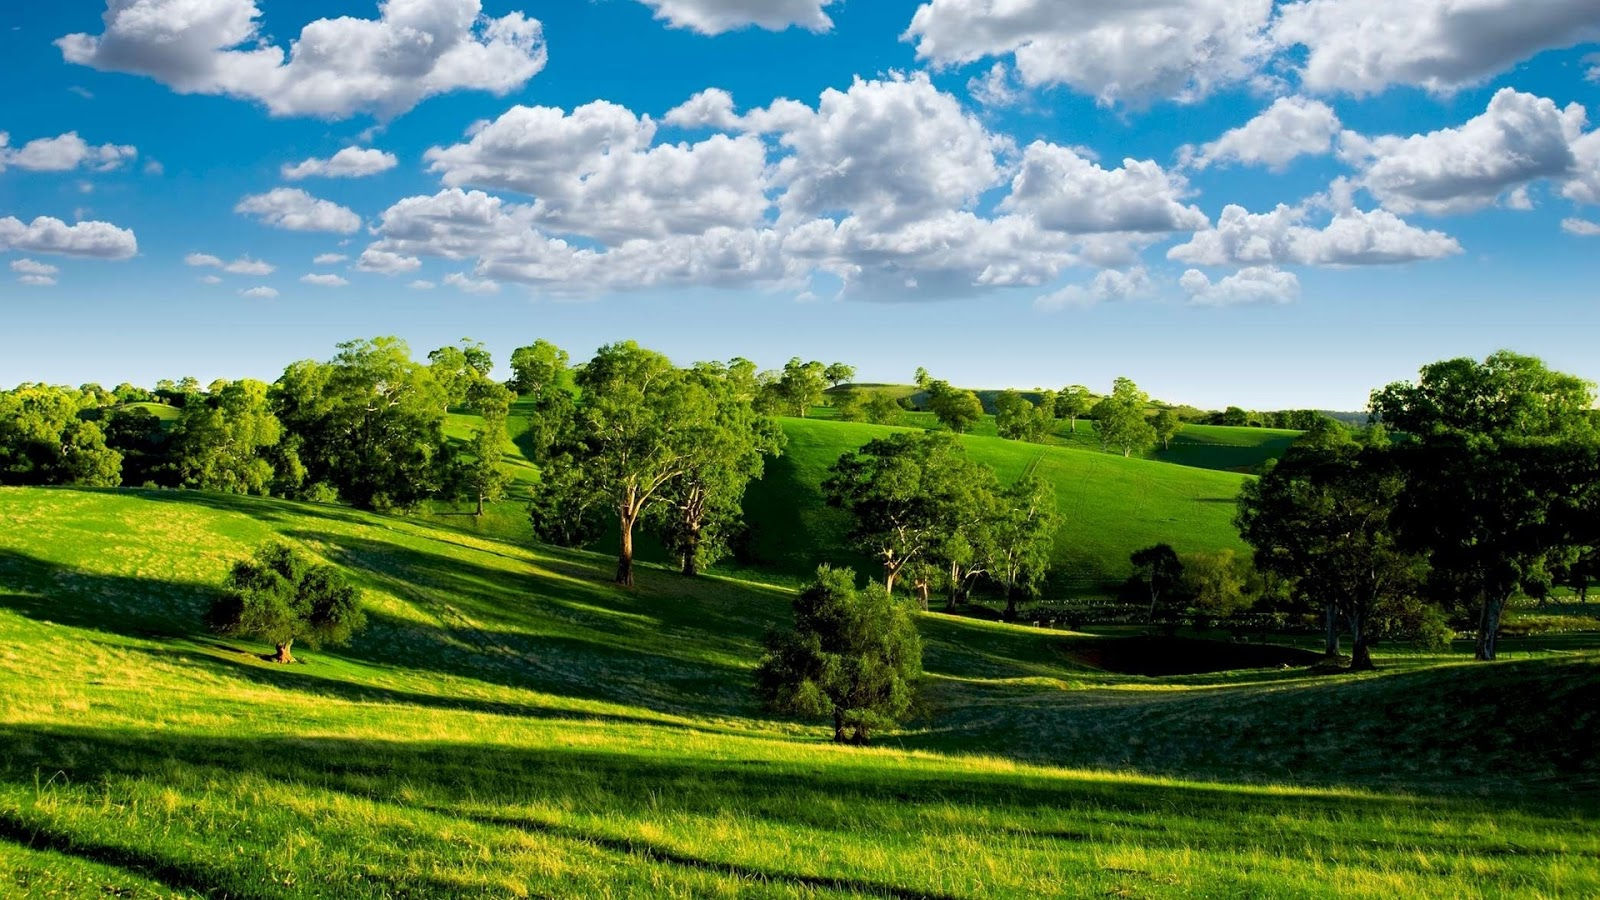 Hd wallpapers beautiful hd scenery wallpapers - Hd photos of scenery ...